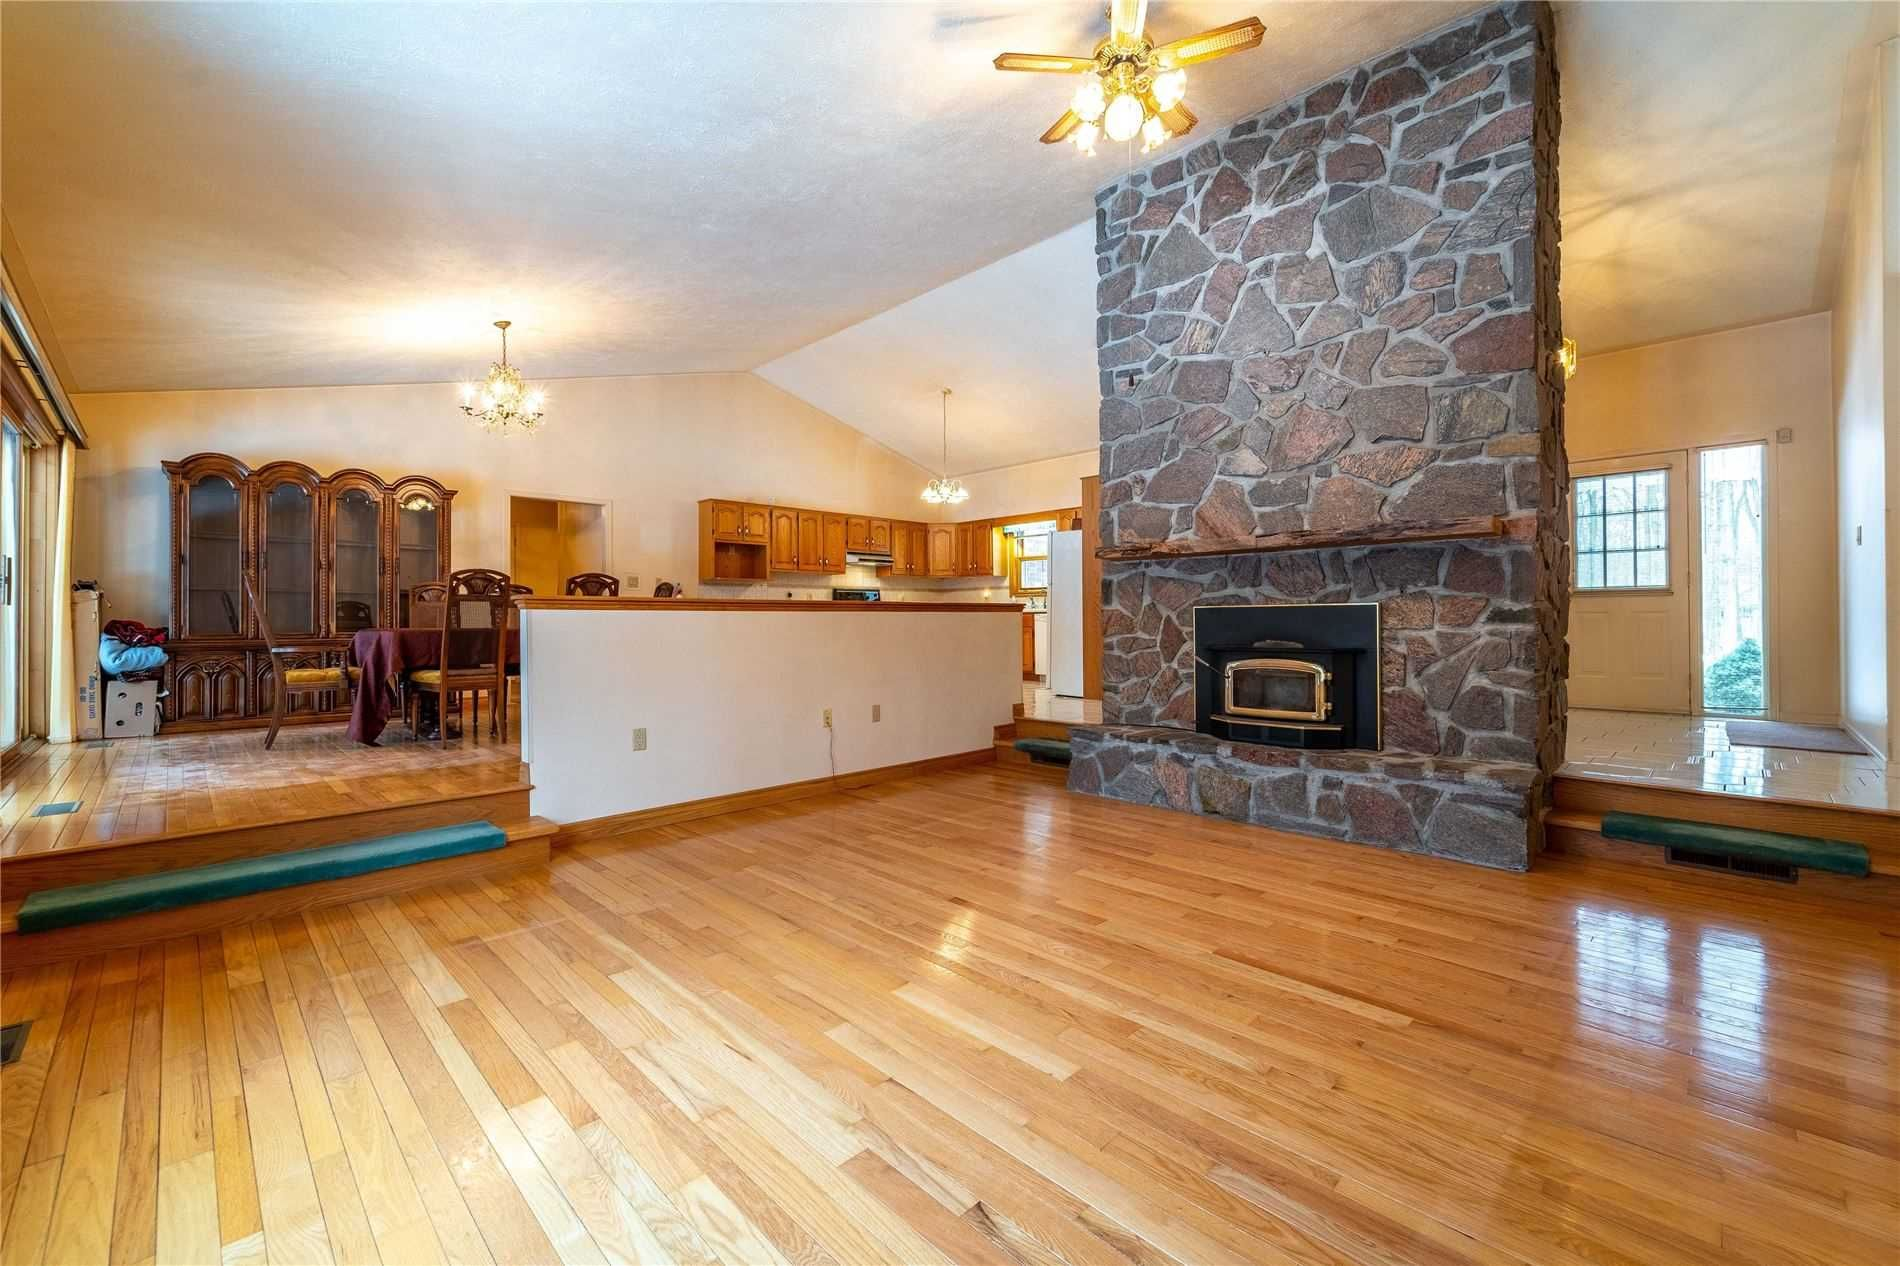 Photo 6: Photos: 918 Windham12 Road in Norfolk: Simcoe House (Bungalow) for sale : MLS®# X4707719